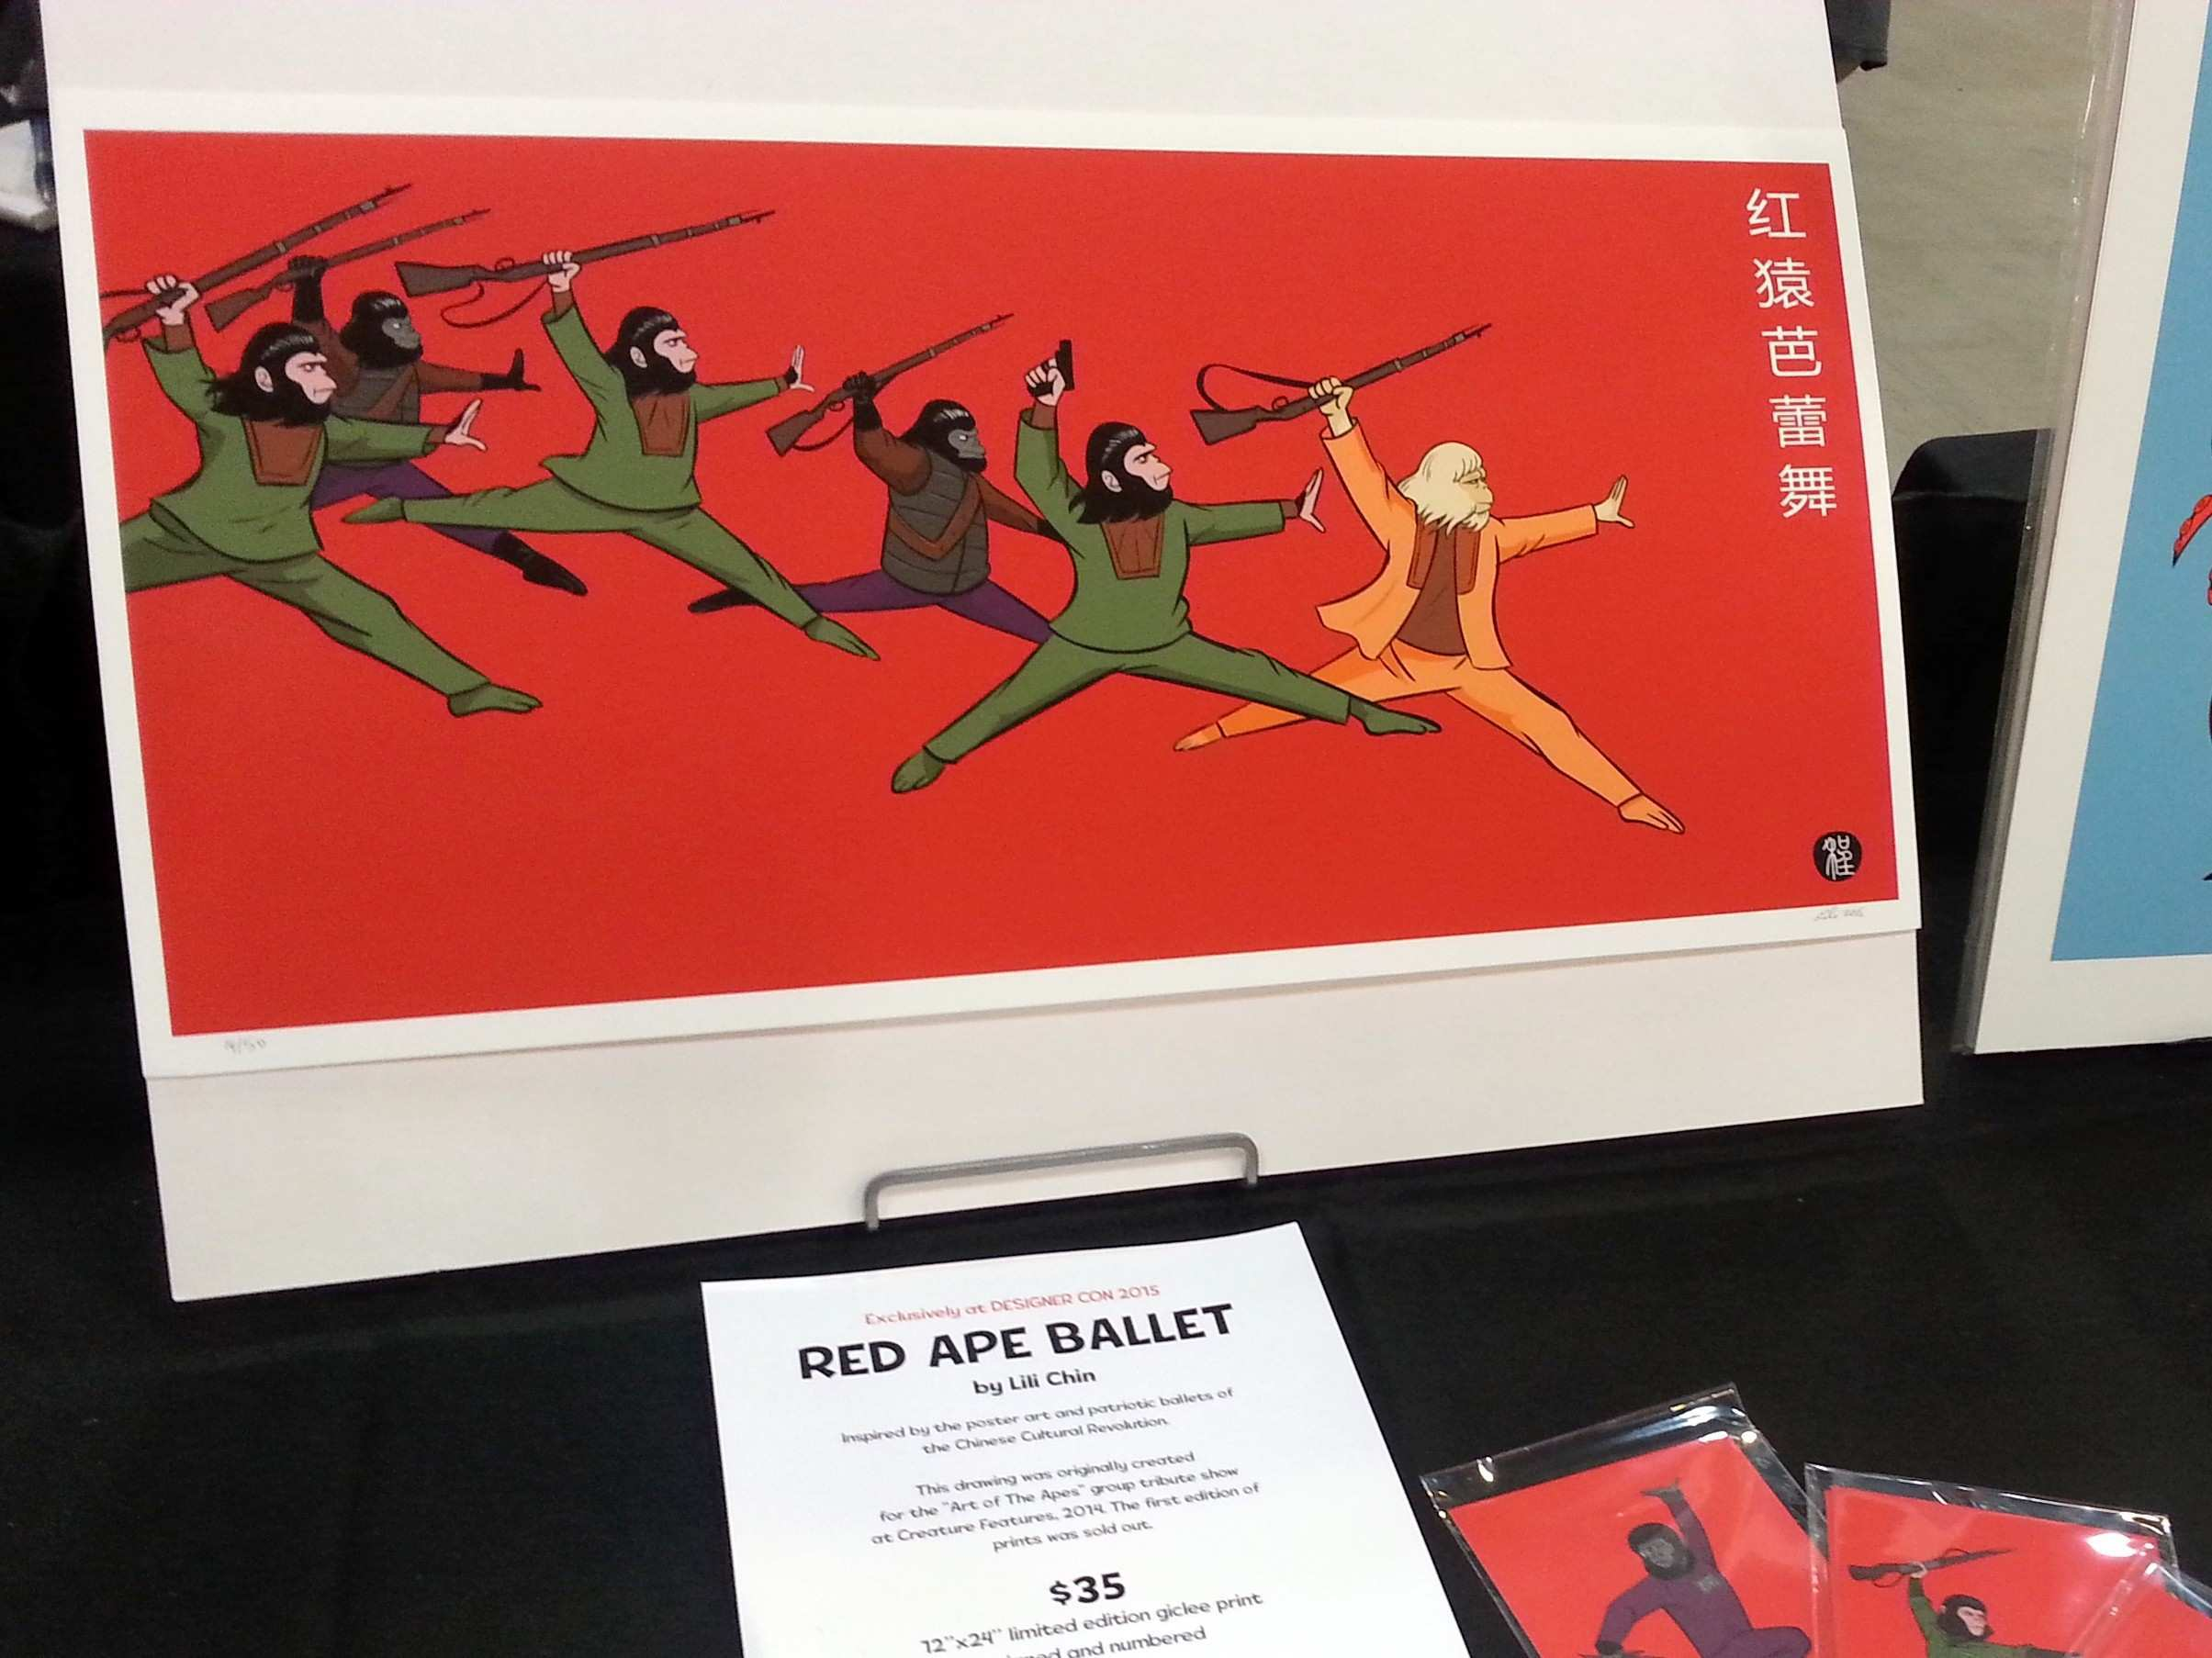 lilichin Red Ape Ballet 24x12 giclee print limited edition